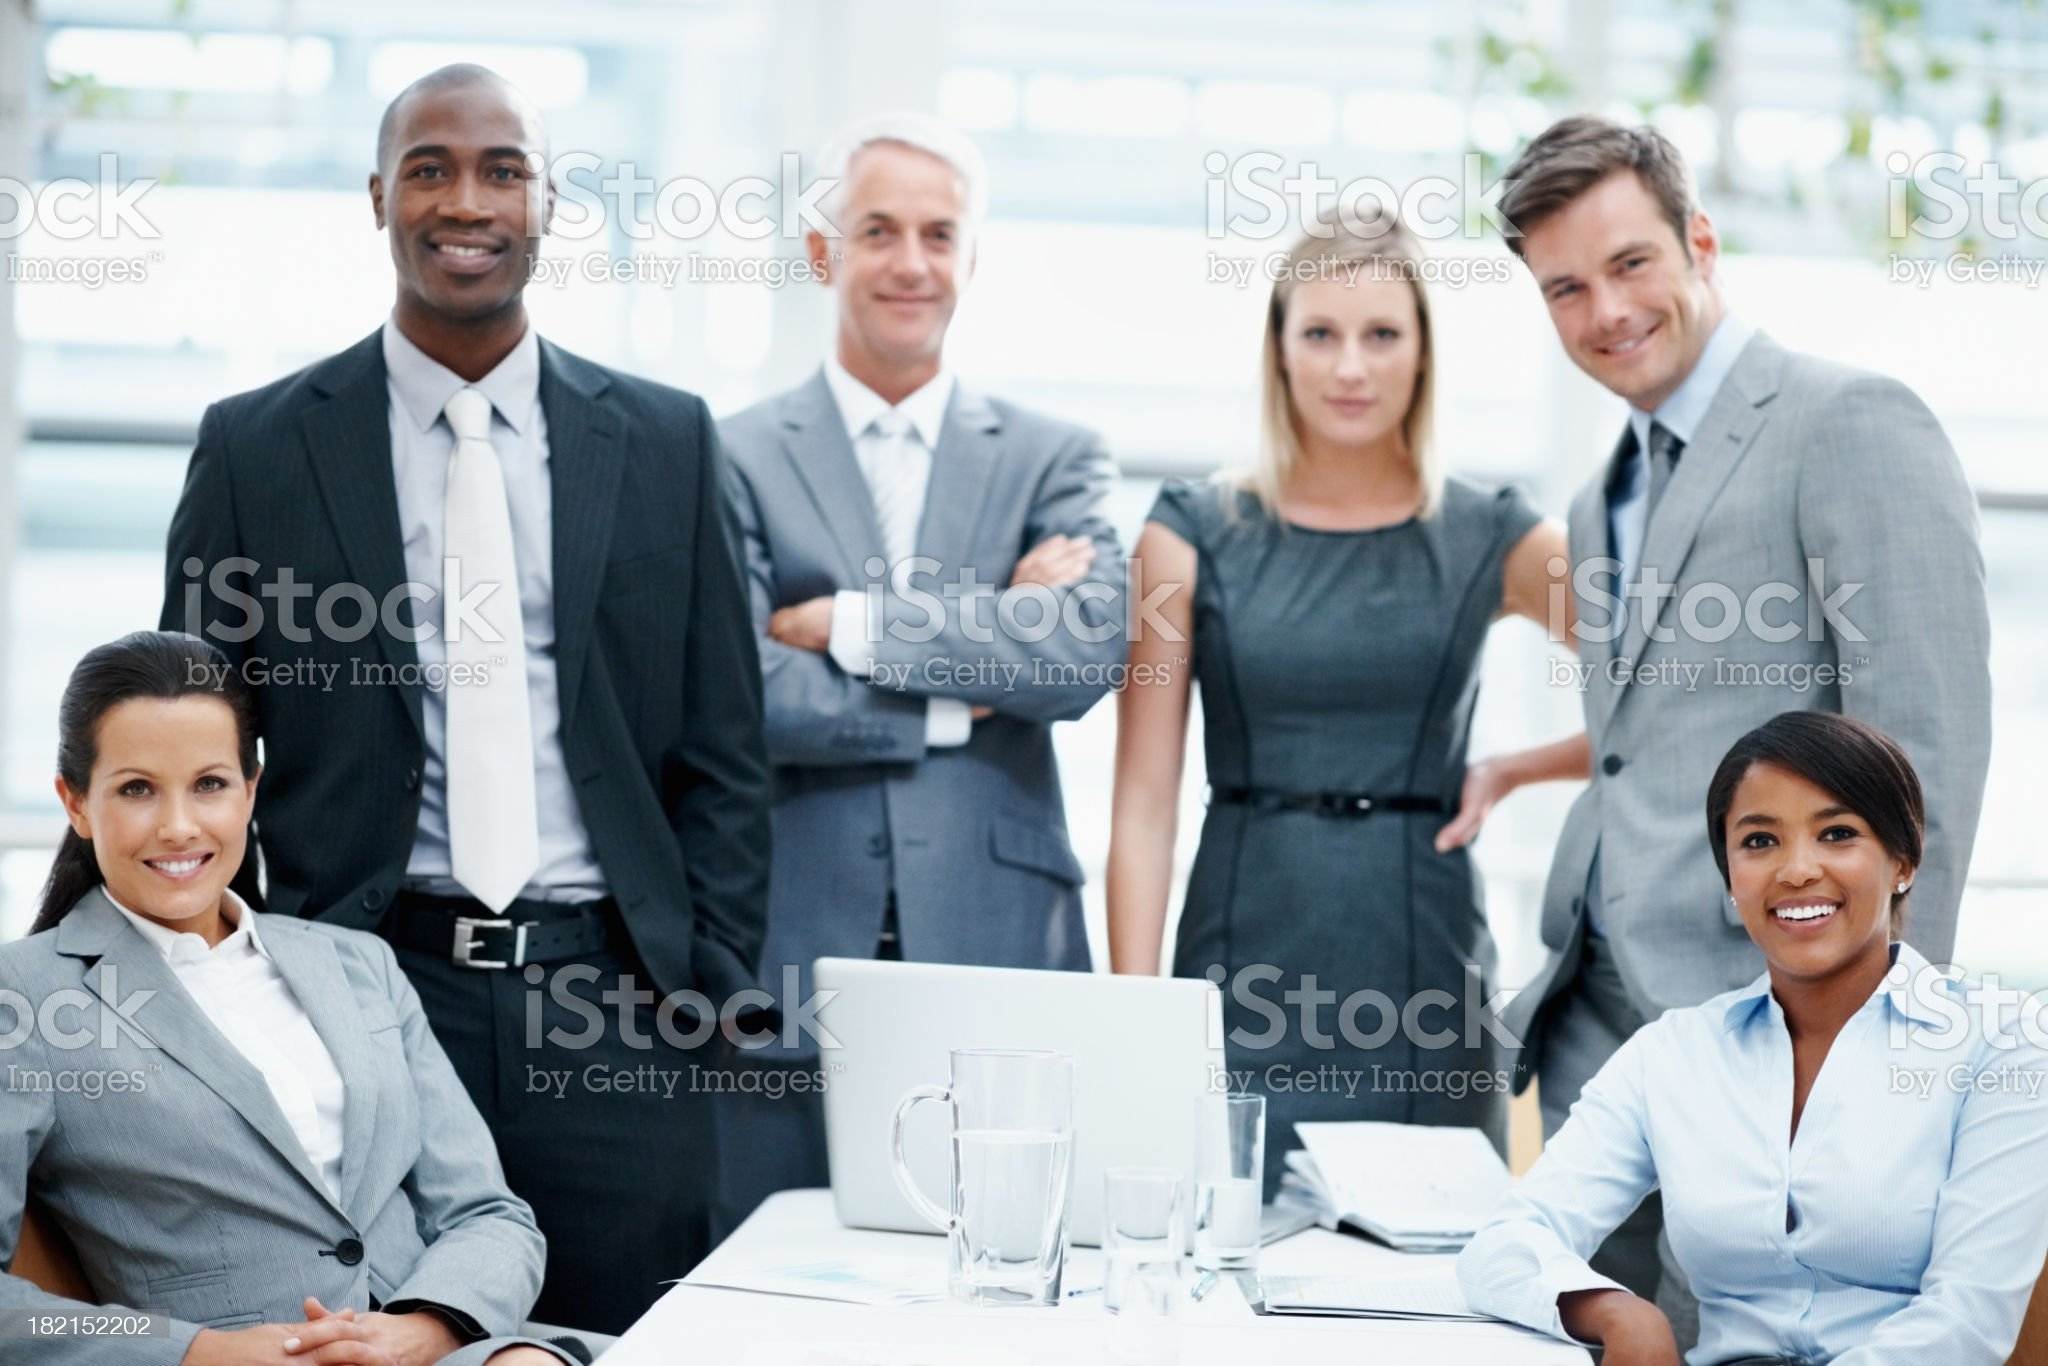 Business with an attitude royalty-free stock photo